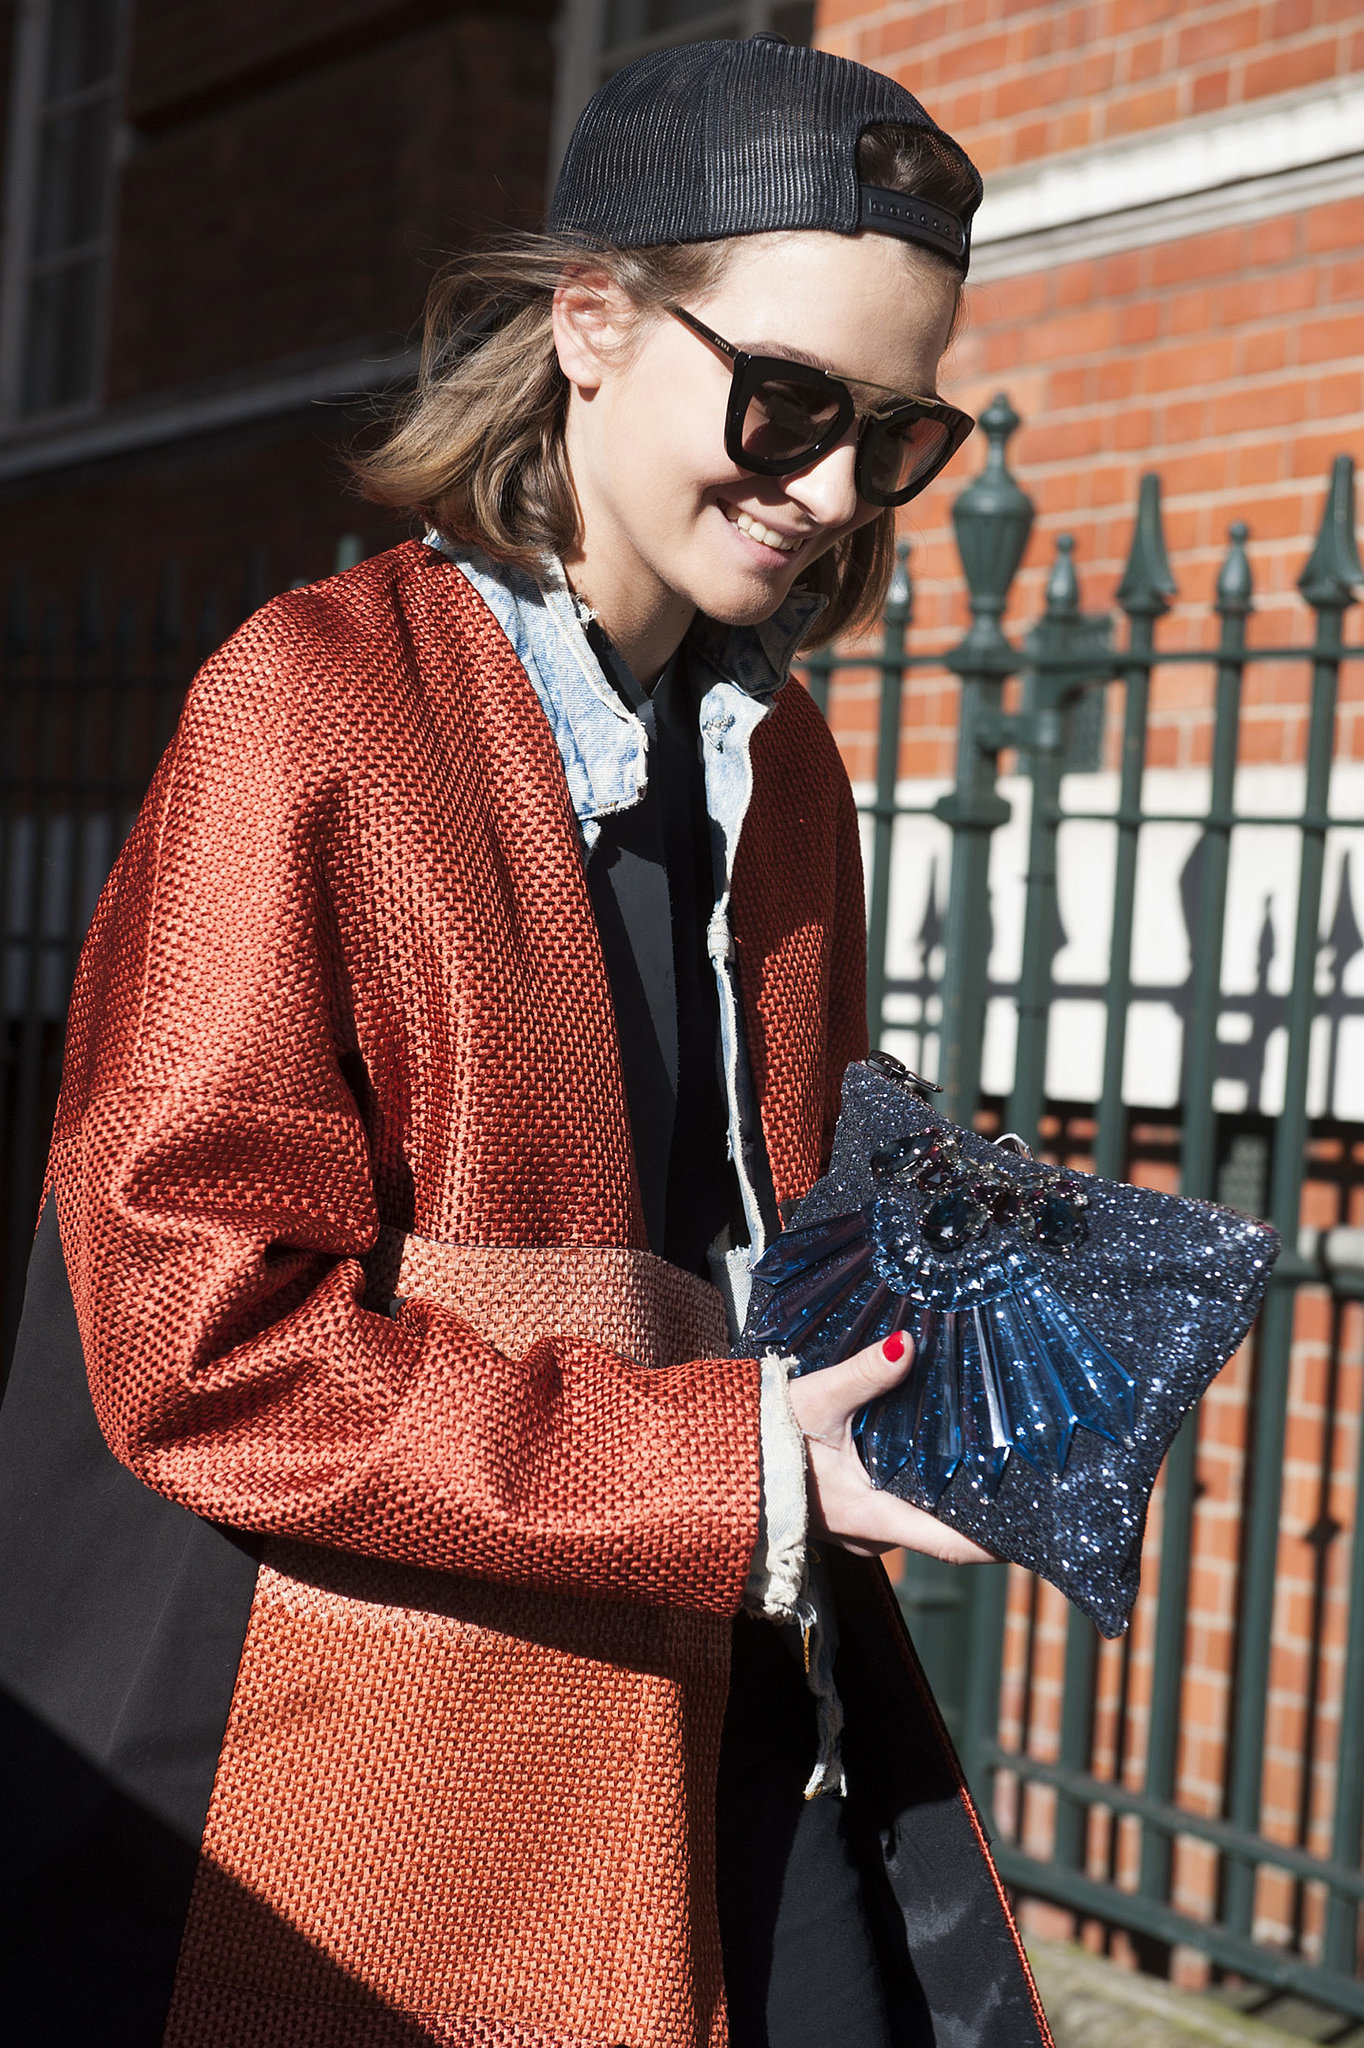 An all-star mix of add-ons, from the cap to the beaded clutch.